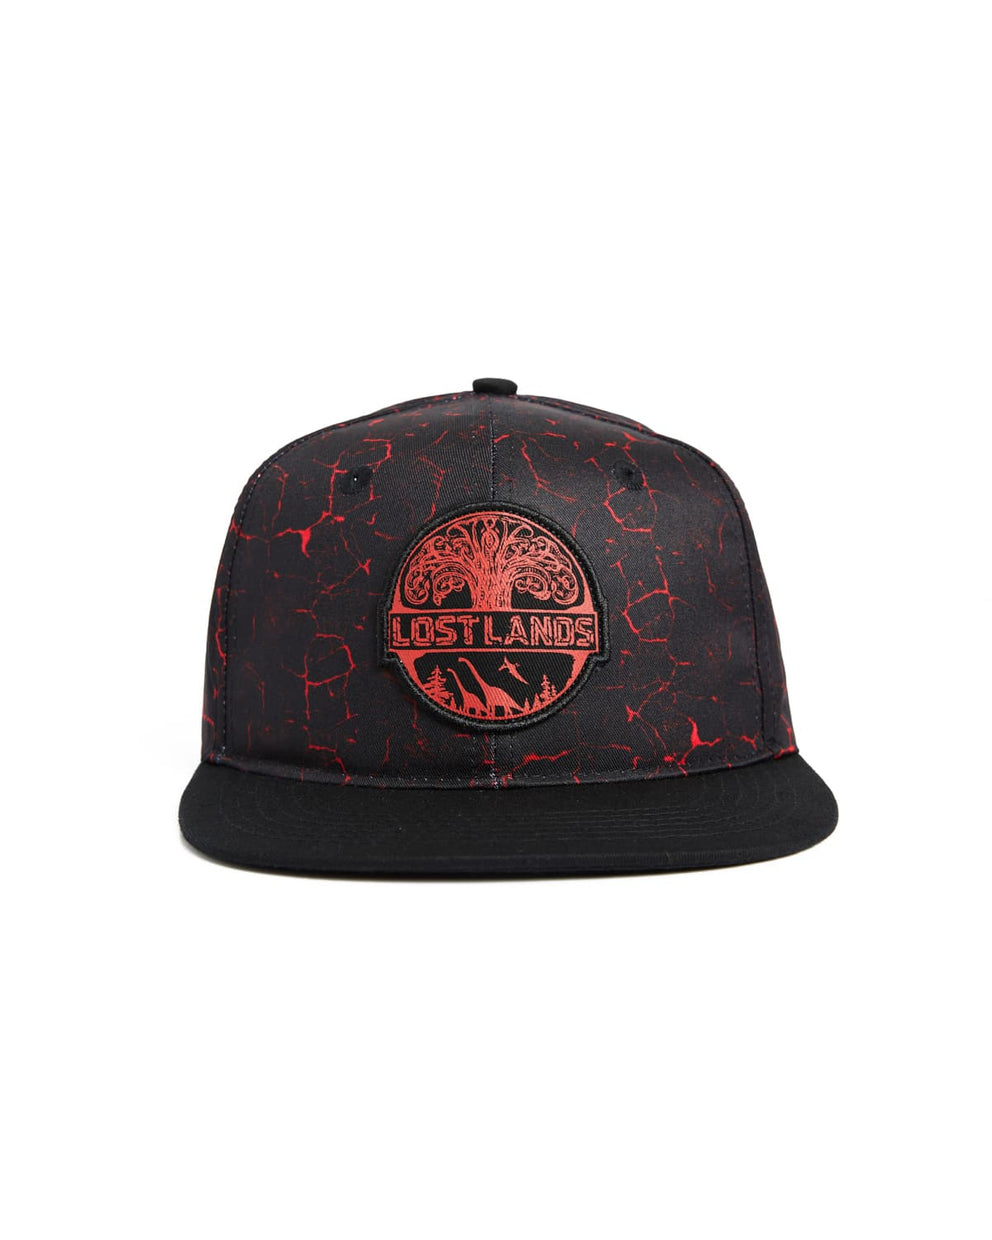 Lost Lands Magma Snapback (Red)